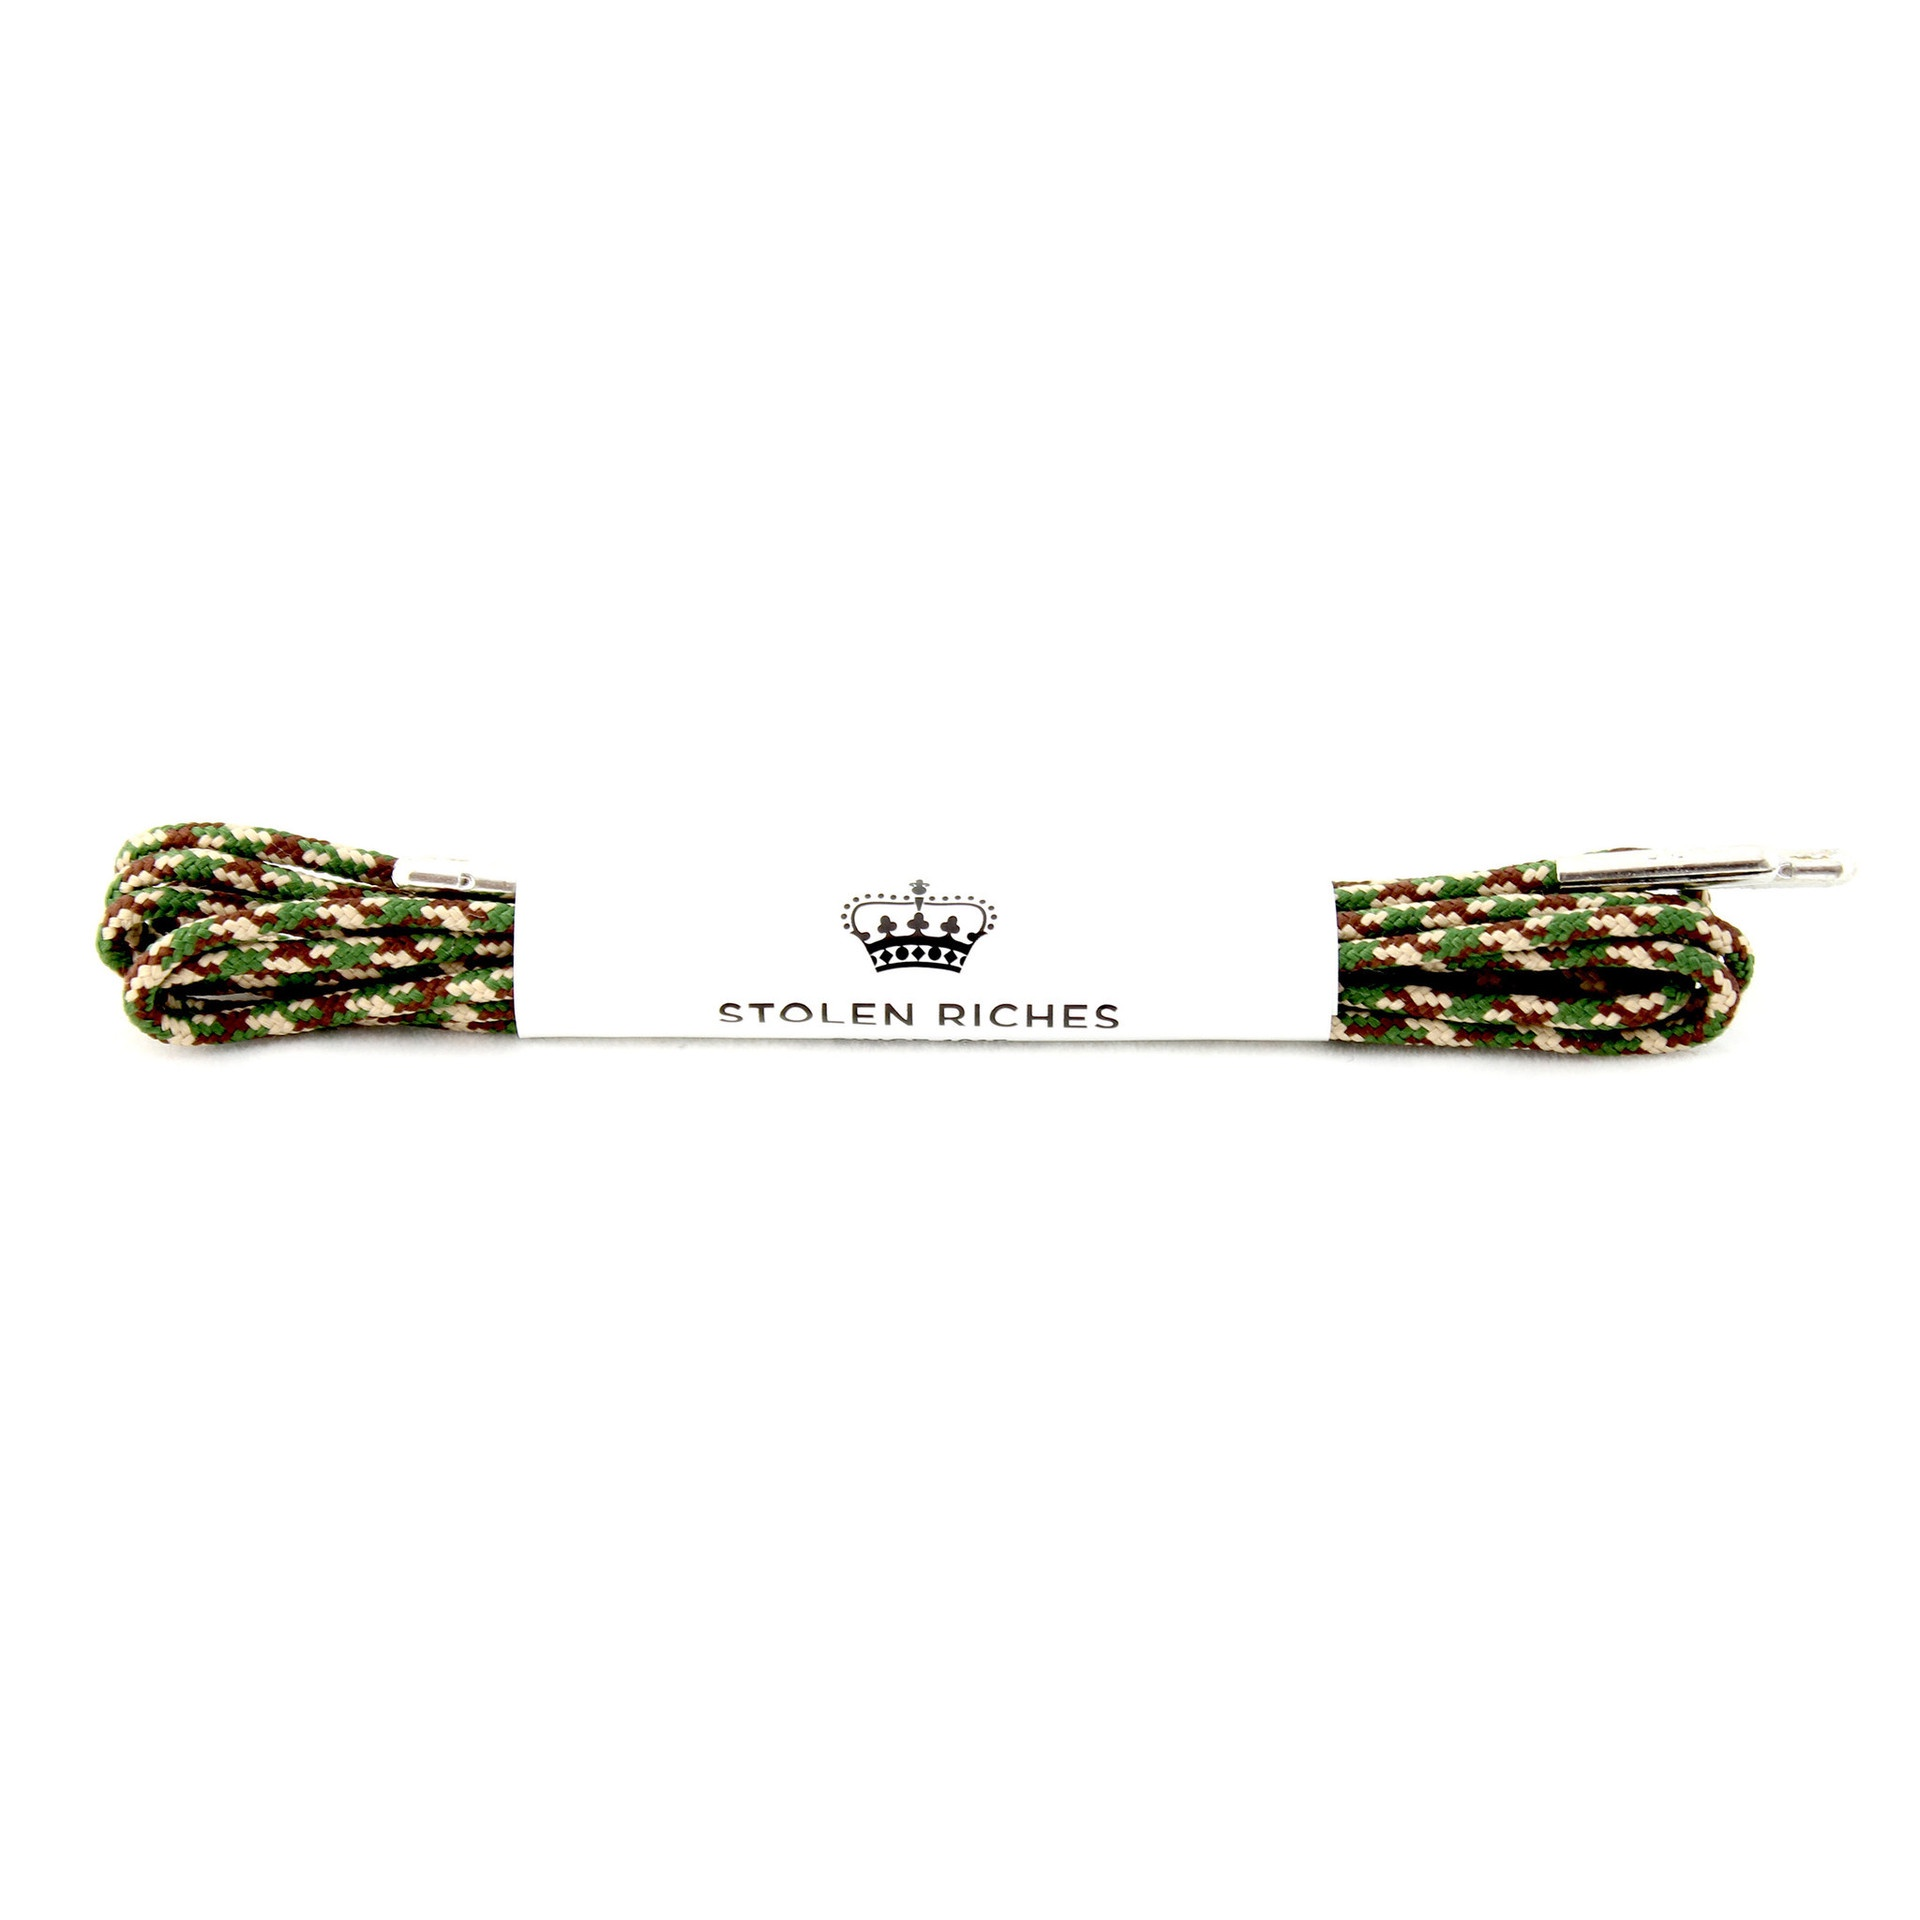 STOLEN RICHES - DRESS LACES (5-6 EYELETS) IN CAMO GREEN